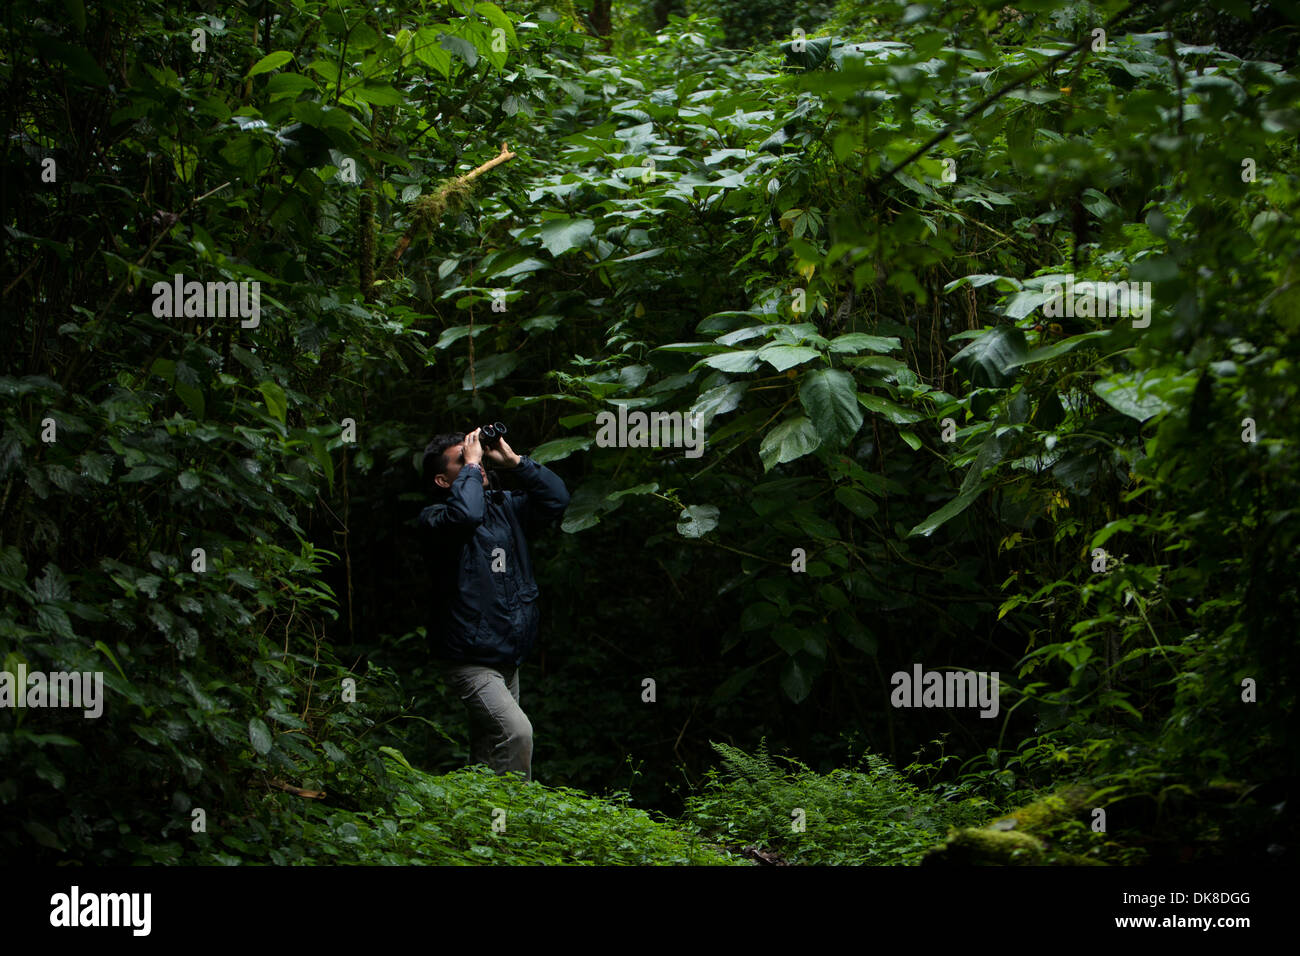 A biologist in a trail in the forest in El Triunfo Biosphere Reserve in the Sierra Madre mountains, Chiapas State, Mexico. - Stock Image